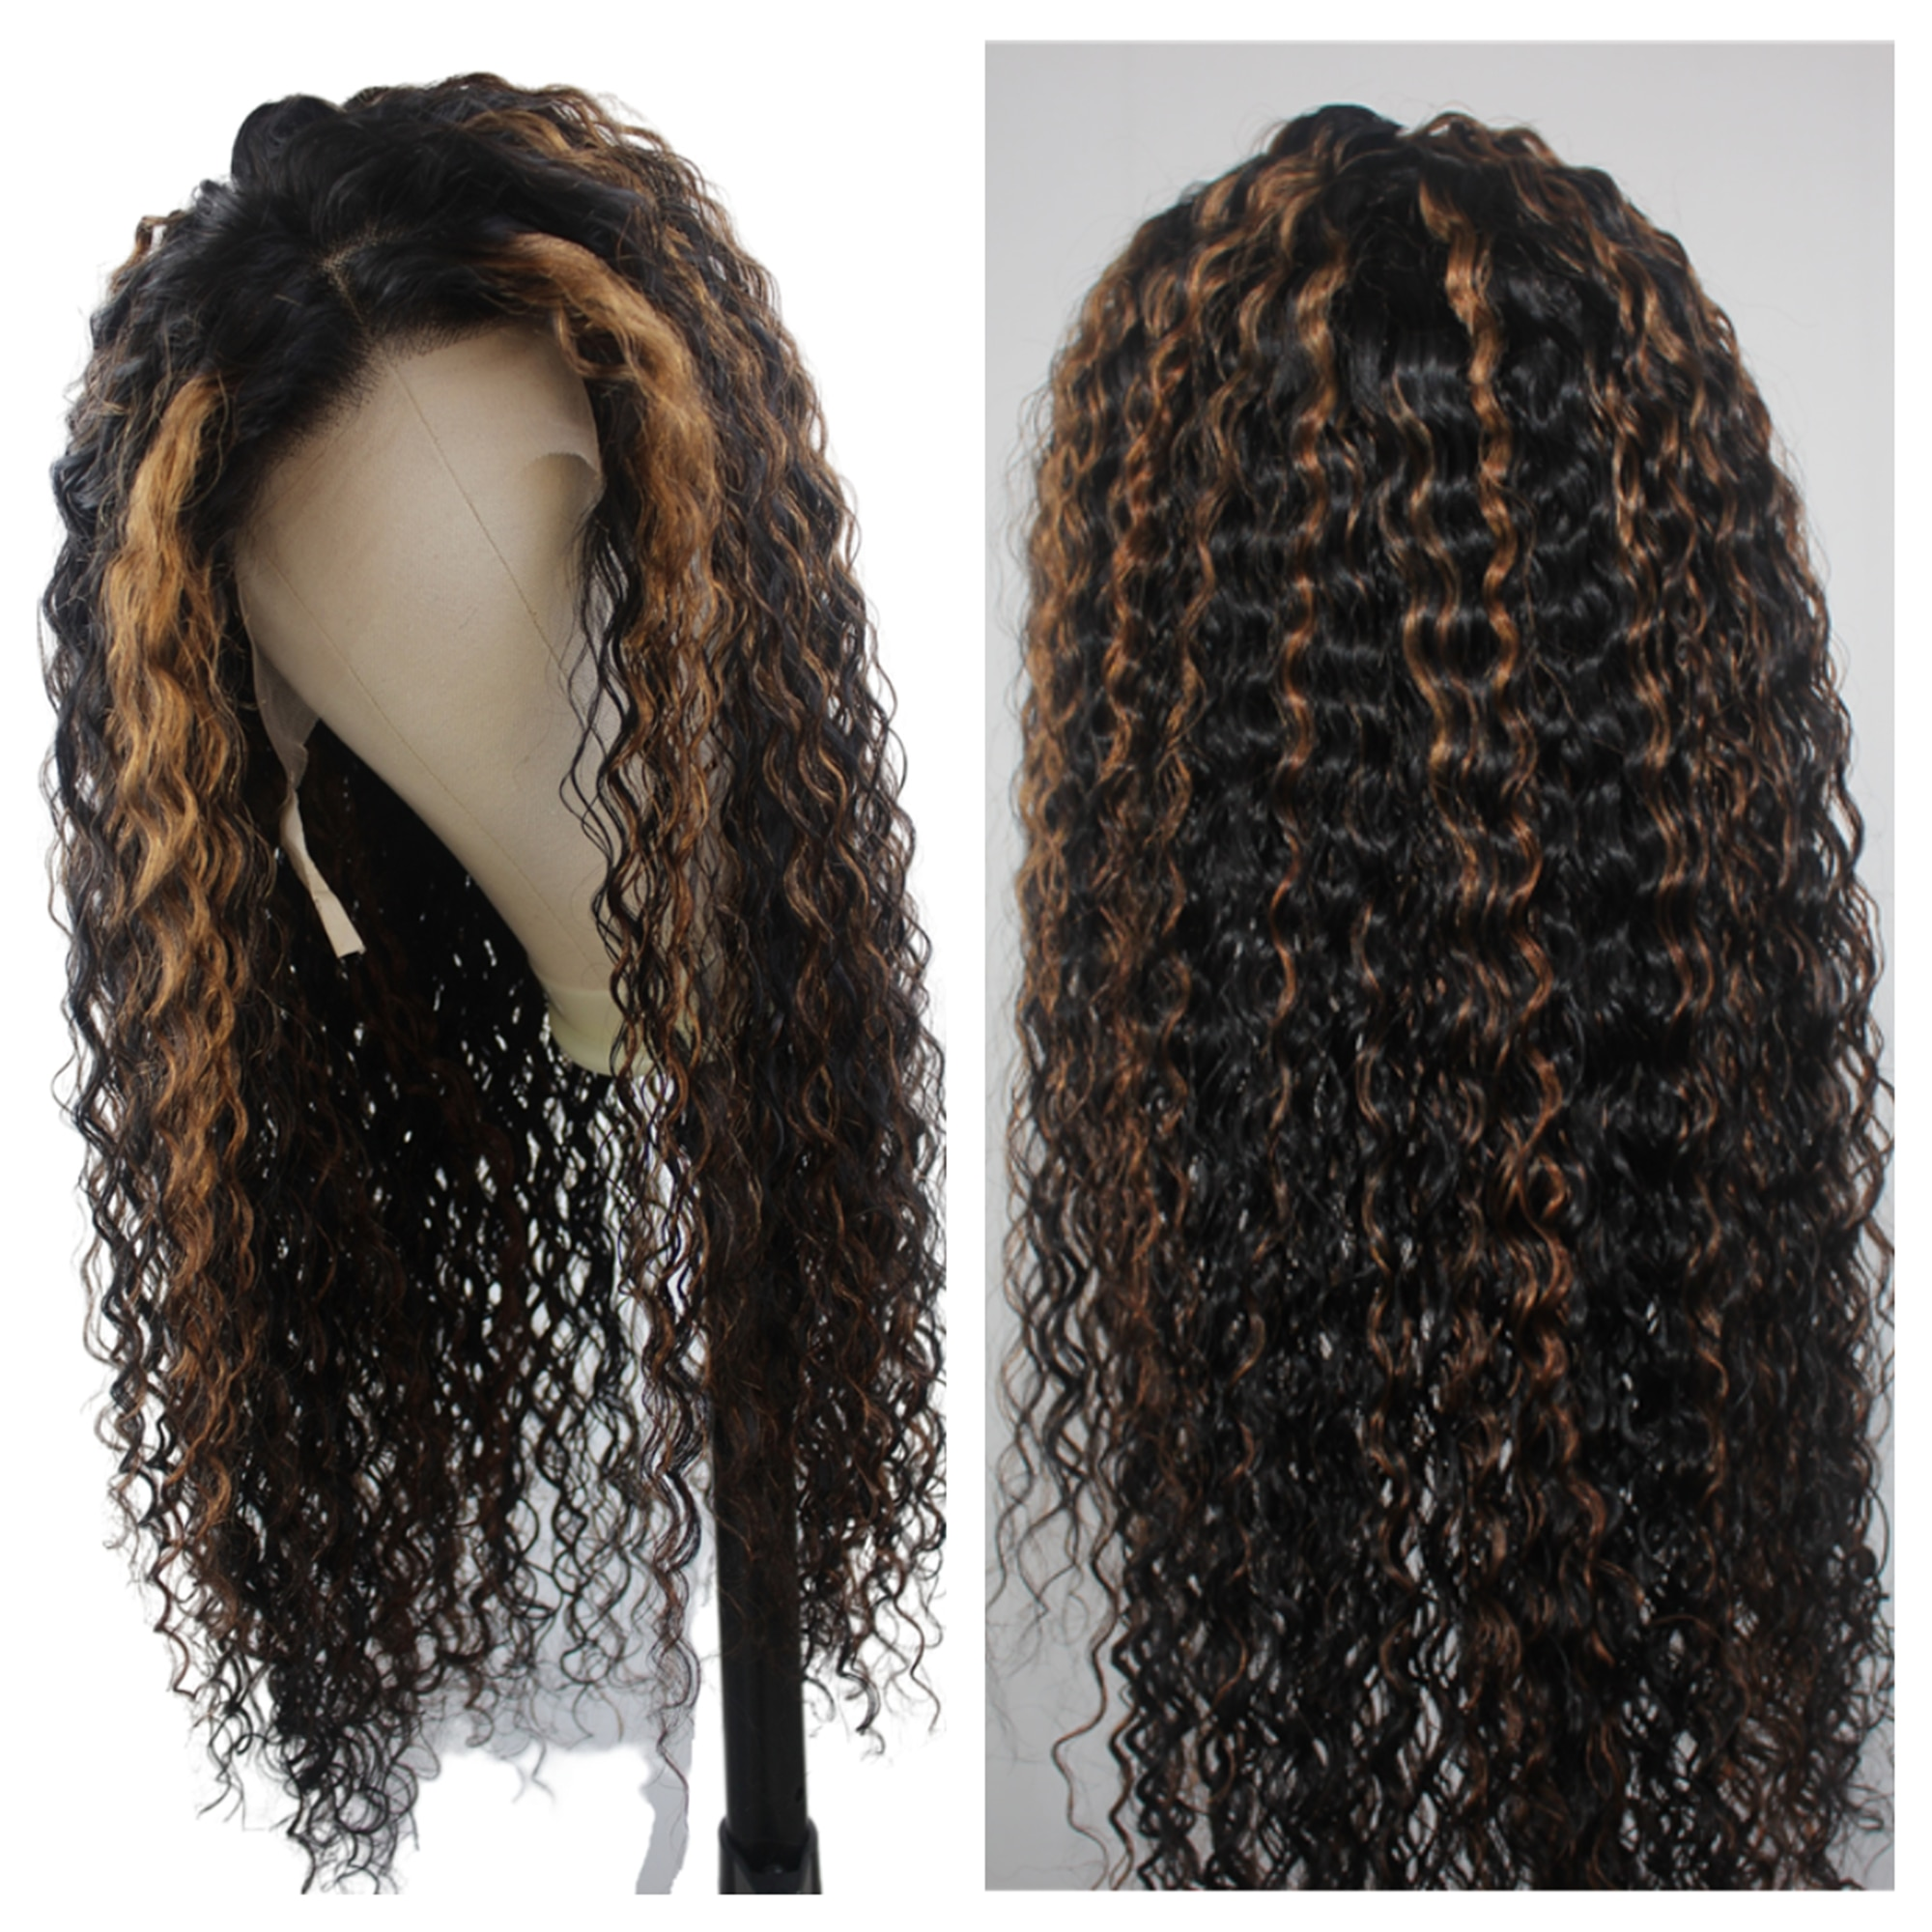 13×1  T Part Transparent Lace Frontal Wigs Virgin Remy Human Hair For Women Mid-Part High Quality Human Hair Wigs Boomluxe Hair